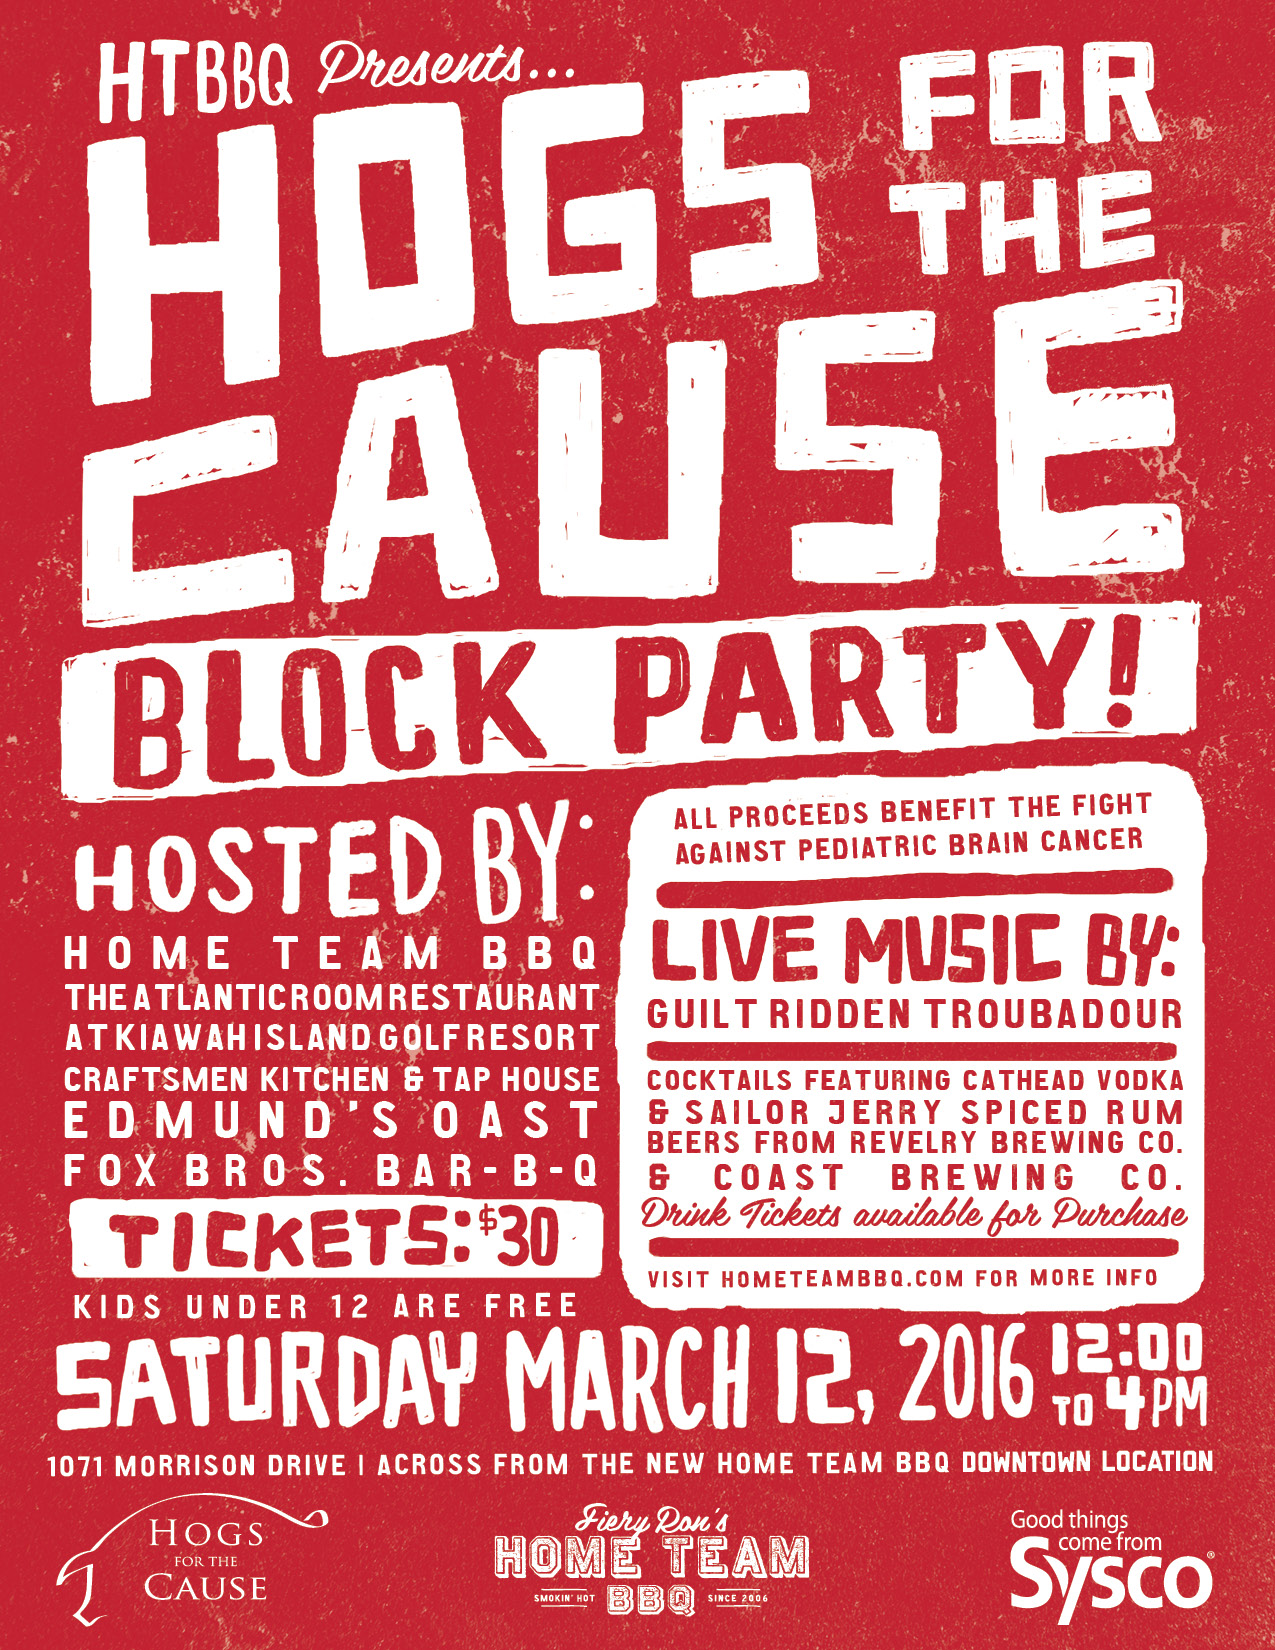 Home Team BBQ Organizes Hogs for the Cause Block Party Tickets